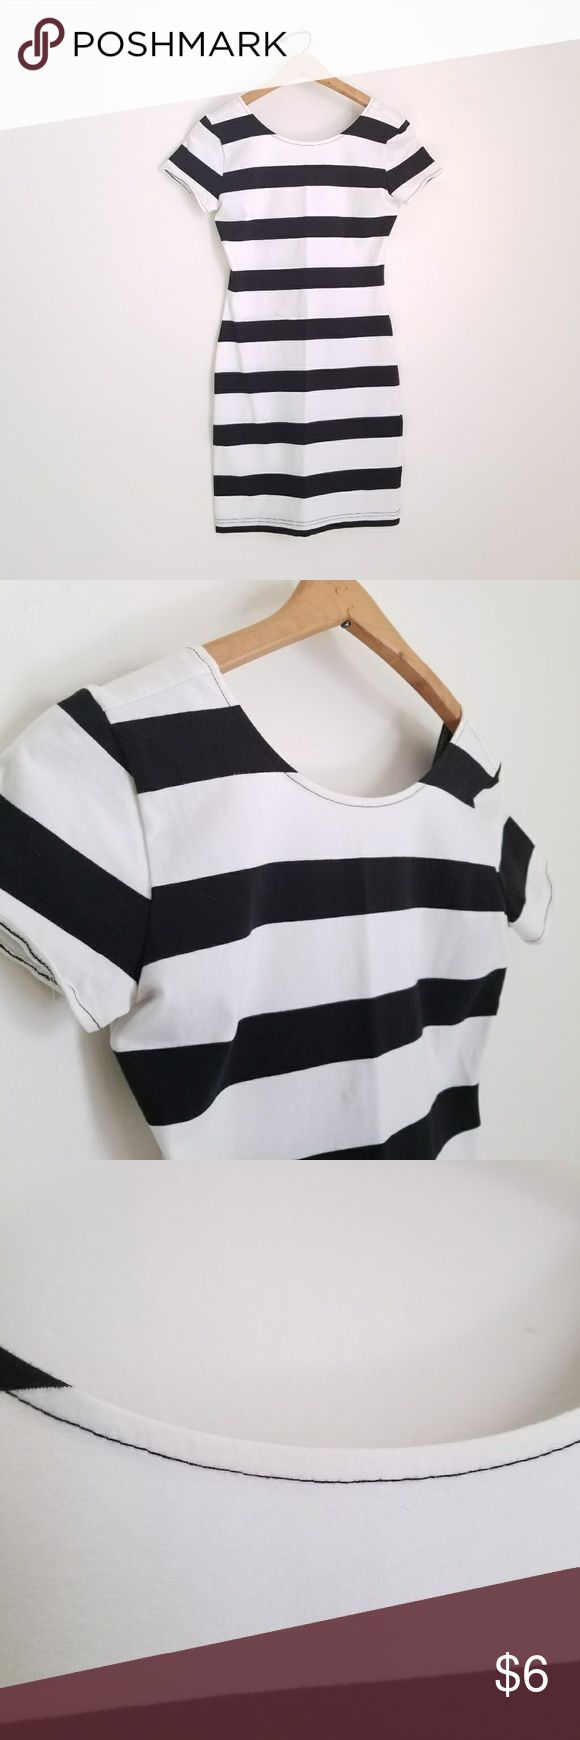 [Forever 21] Striped Bodycon Dress Forever 21 - Size S  Black and white stripe bodycon dress. Low scoop back. Slight fading of the white around edges (see picture 3). Forever 21 Dresses Midi